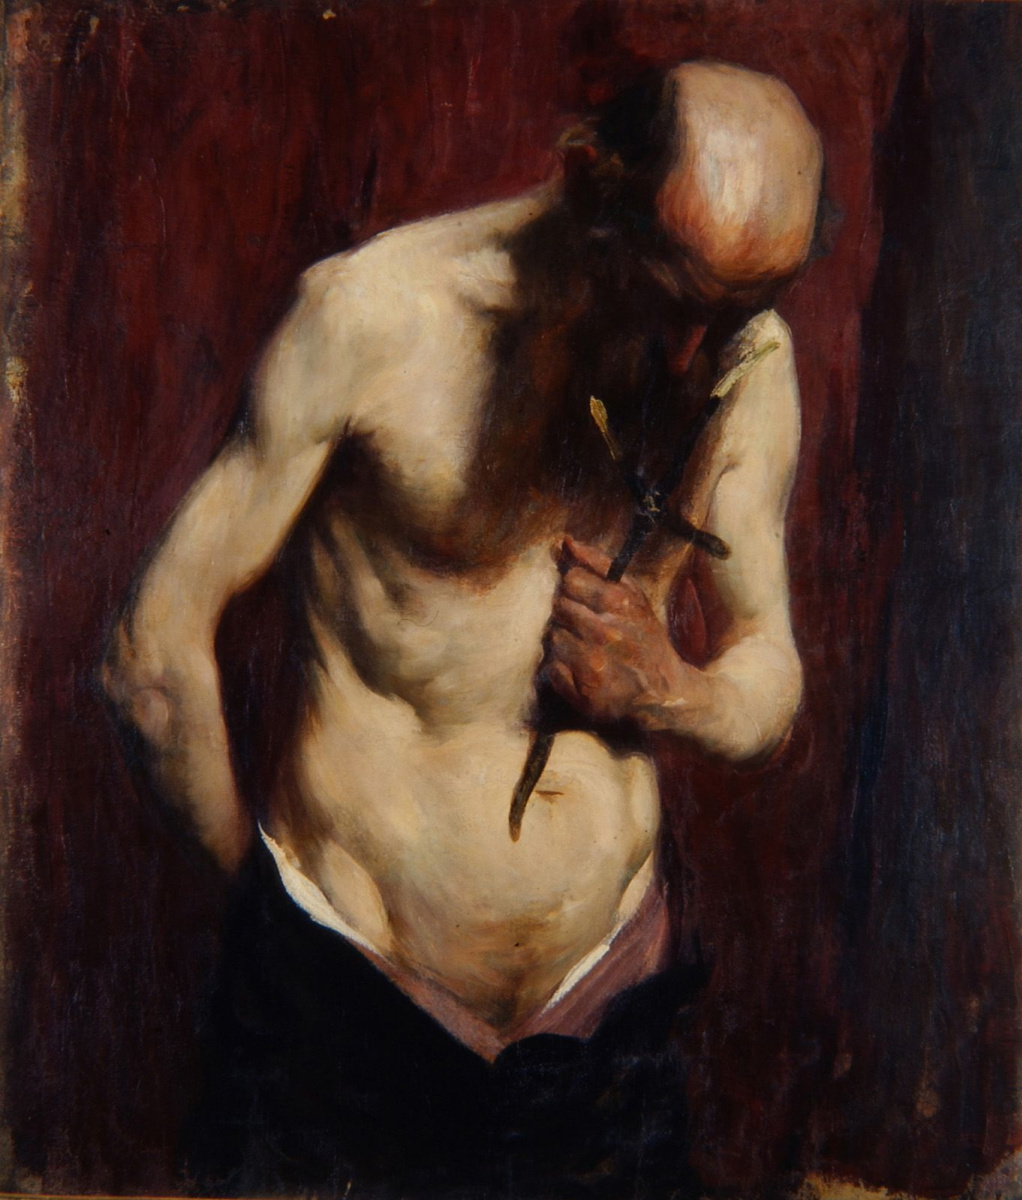 Anton Azhbe. Hermit. Portrait of an old man with a cross